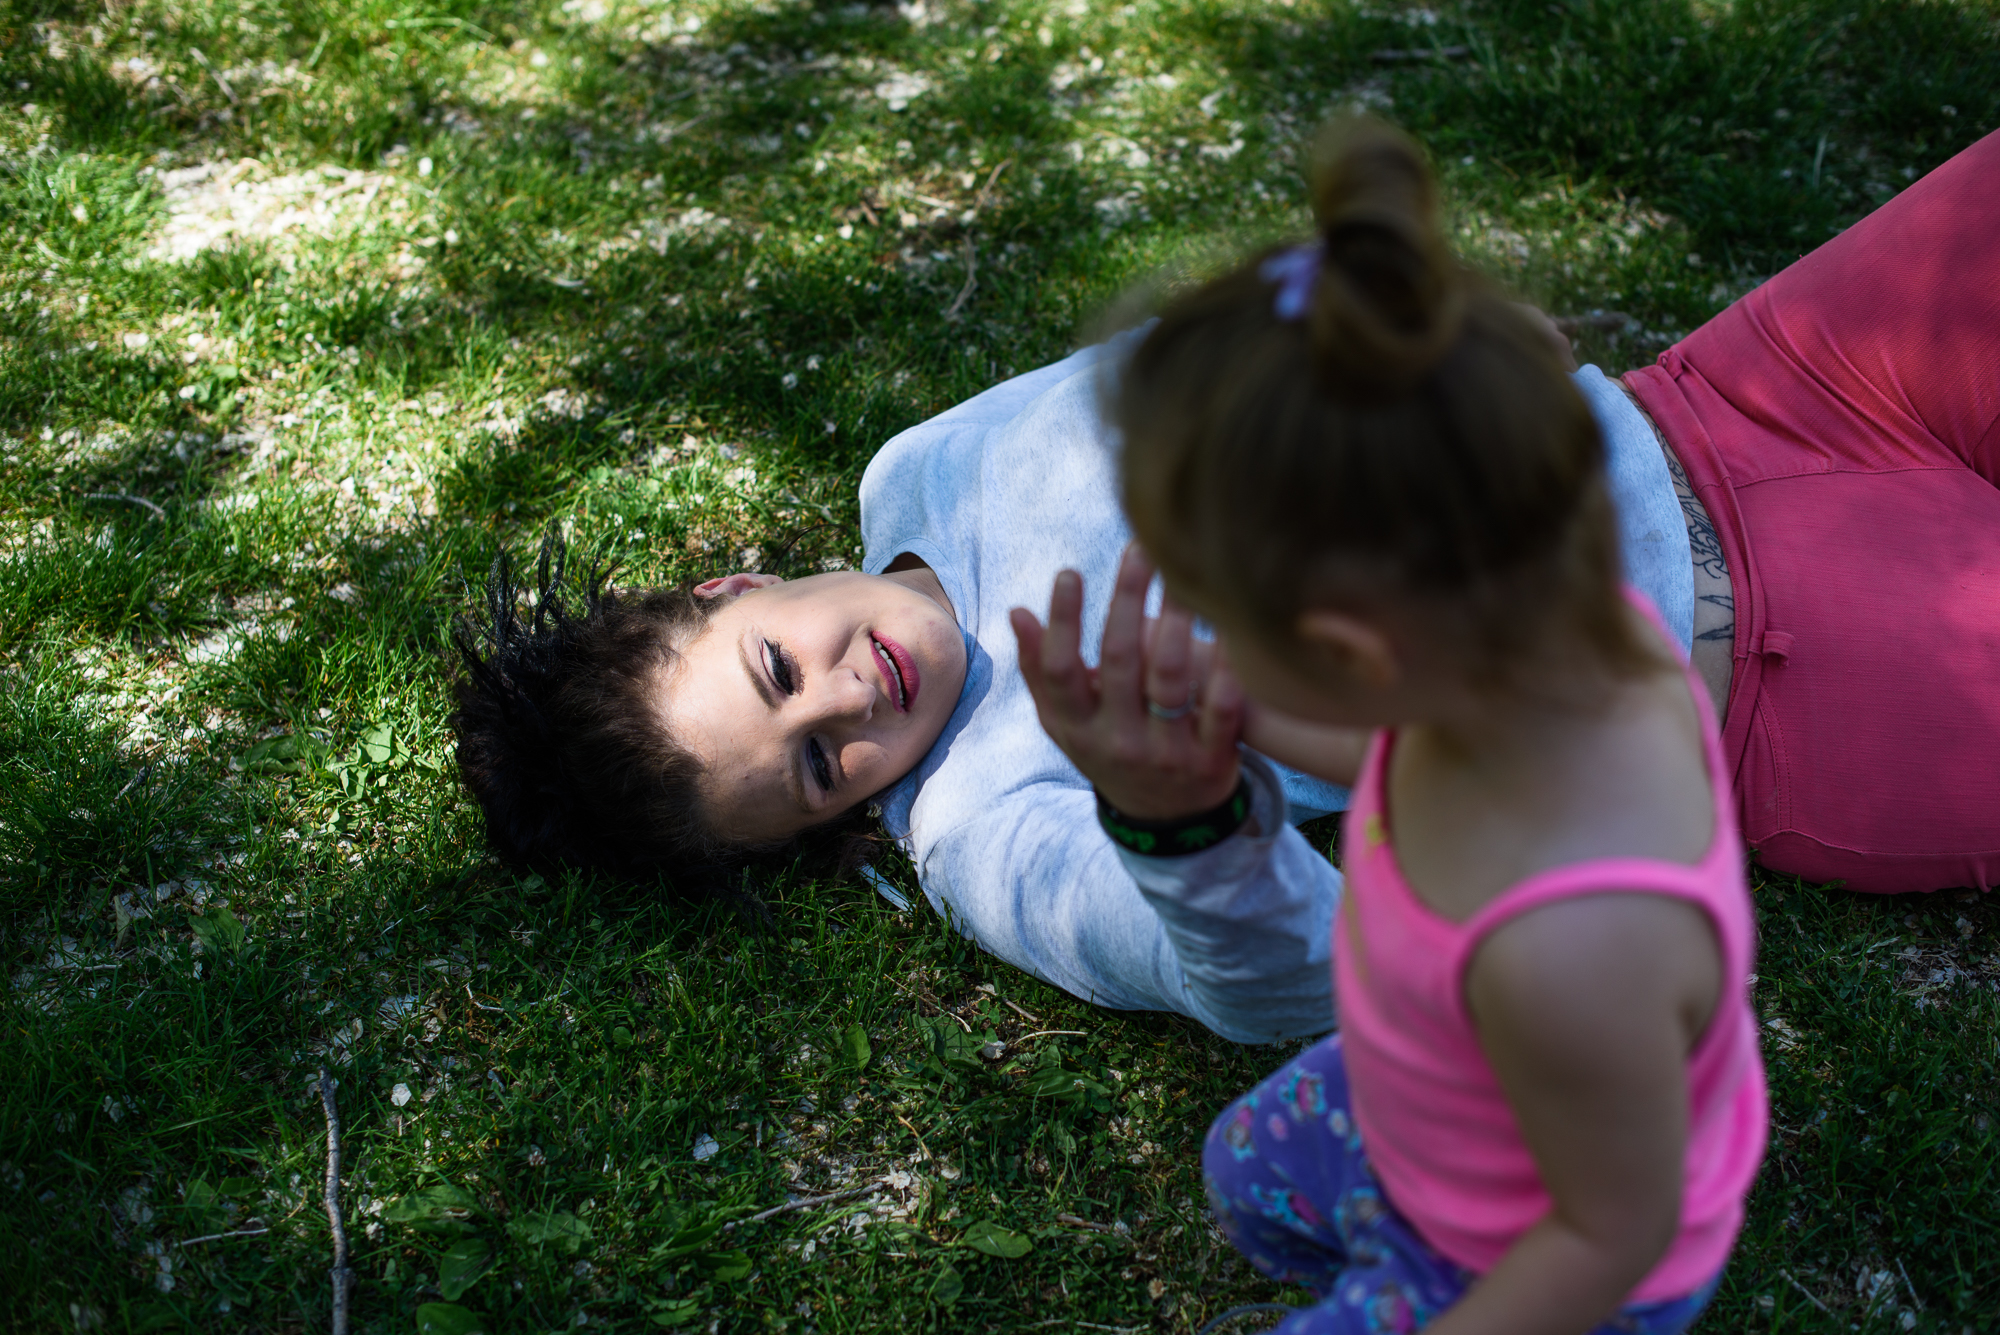 """Alysia lies on grass at the park as Leticia touches her hand. """"I try to give her what I did not have. Take her out. Make childhood something fun and innocent,"""" says Alysia."""